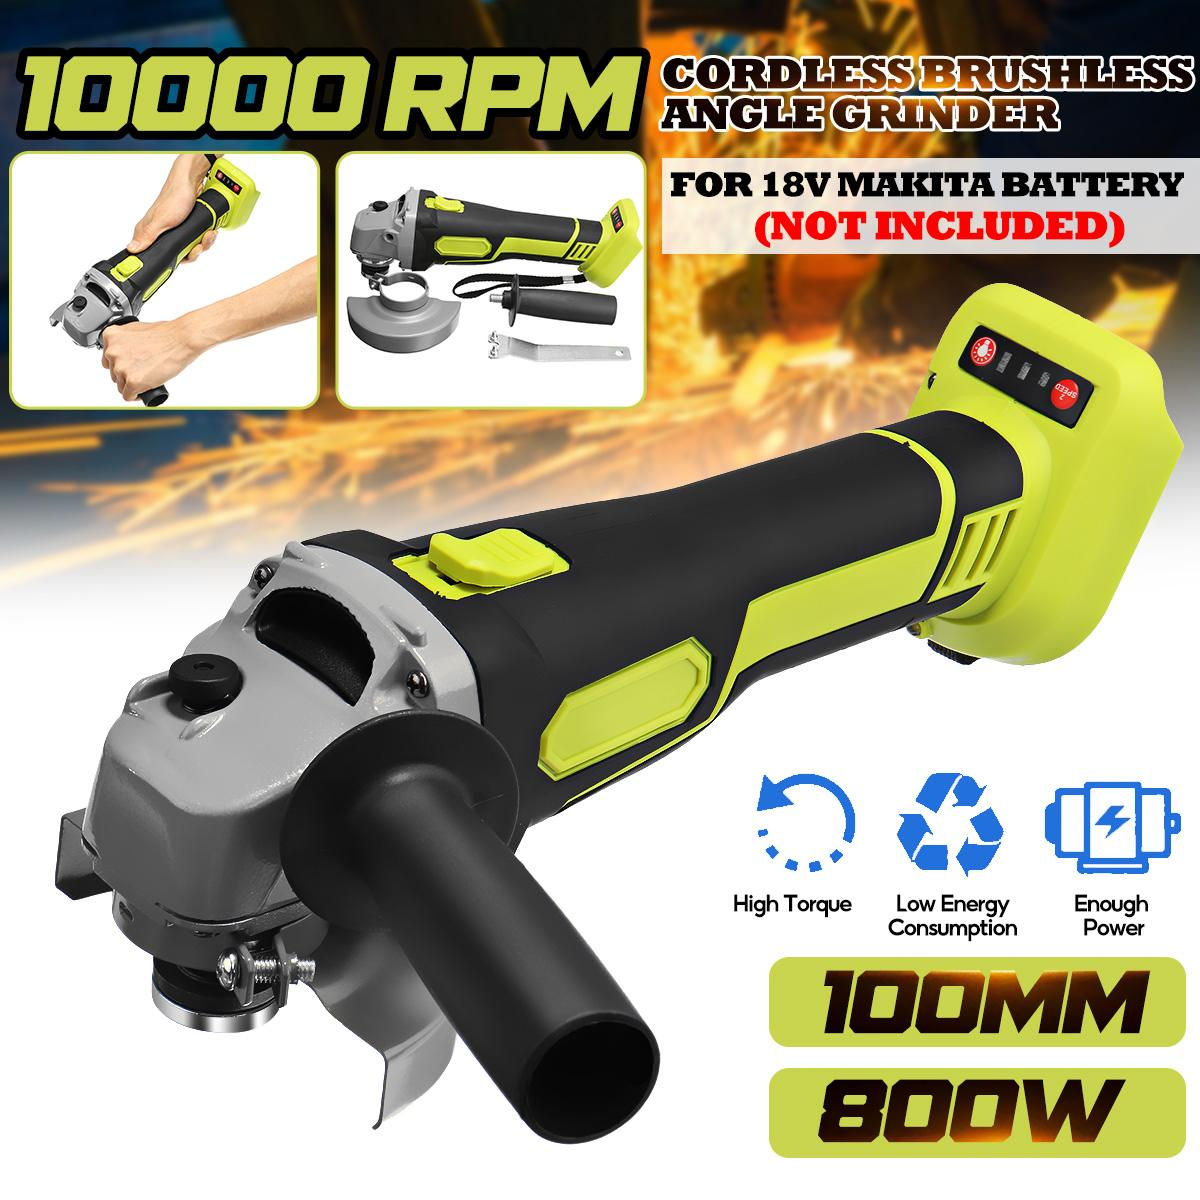 100mm For Makita 18V Brushless Cordless Impact Angle Grinder DIY Power Tools Electric Polishing Grinding Machine Without Battery